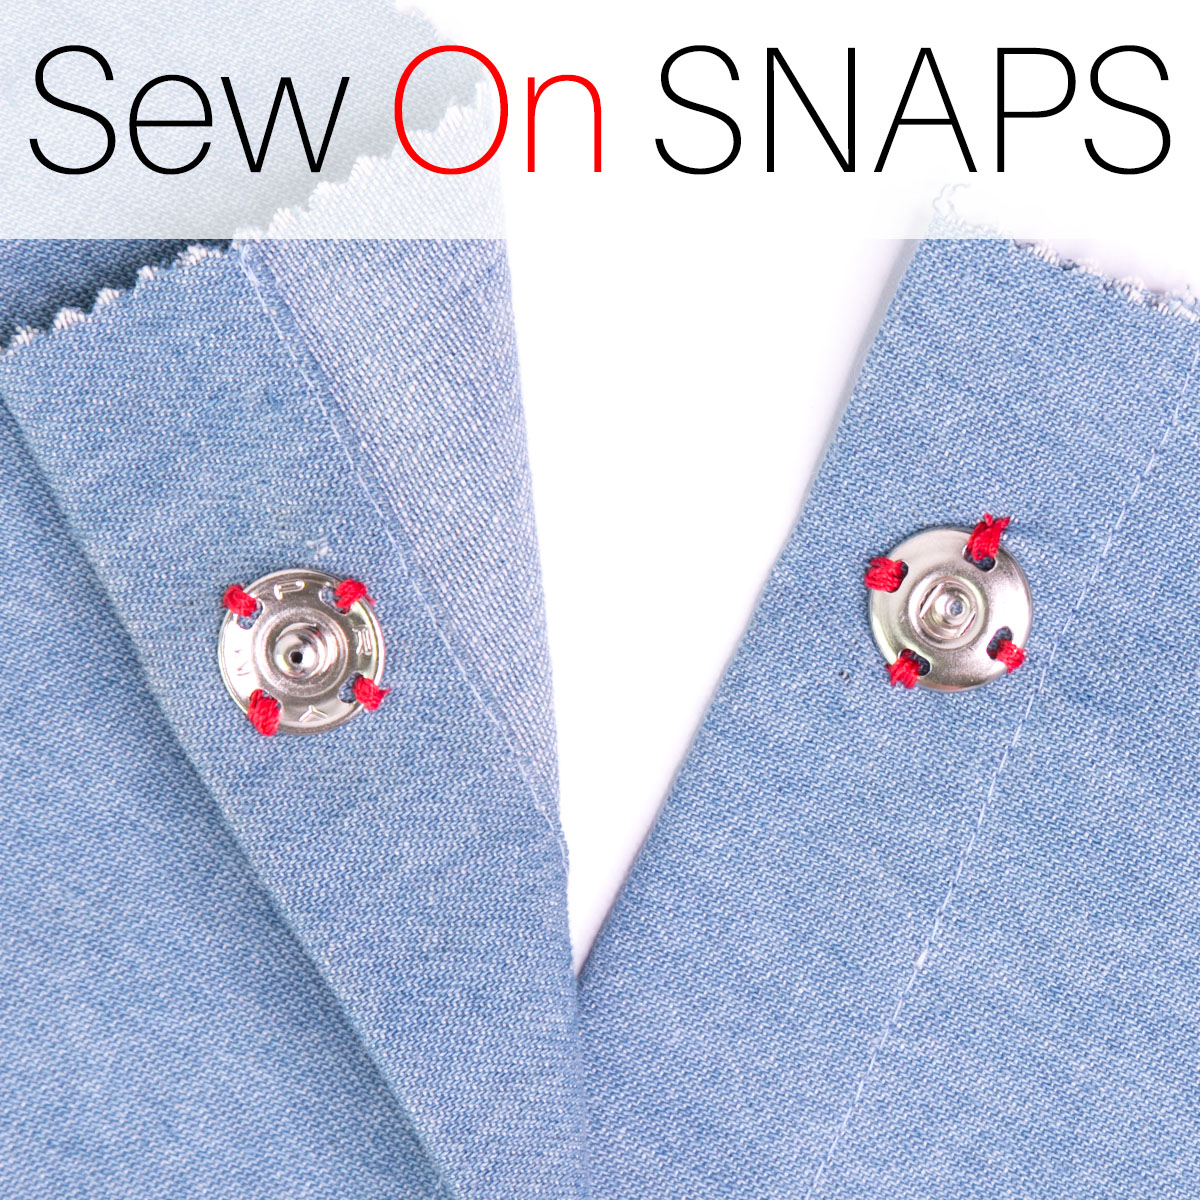 How to Sew On Snaps (Press Studs) for Beginners |TREASURIE